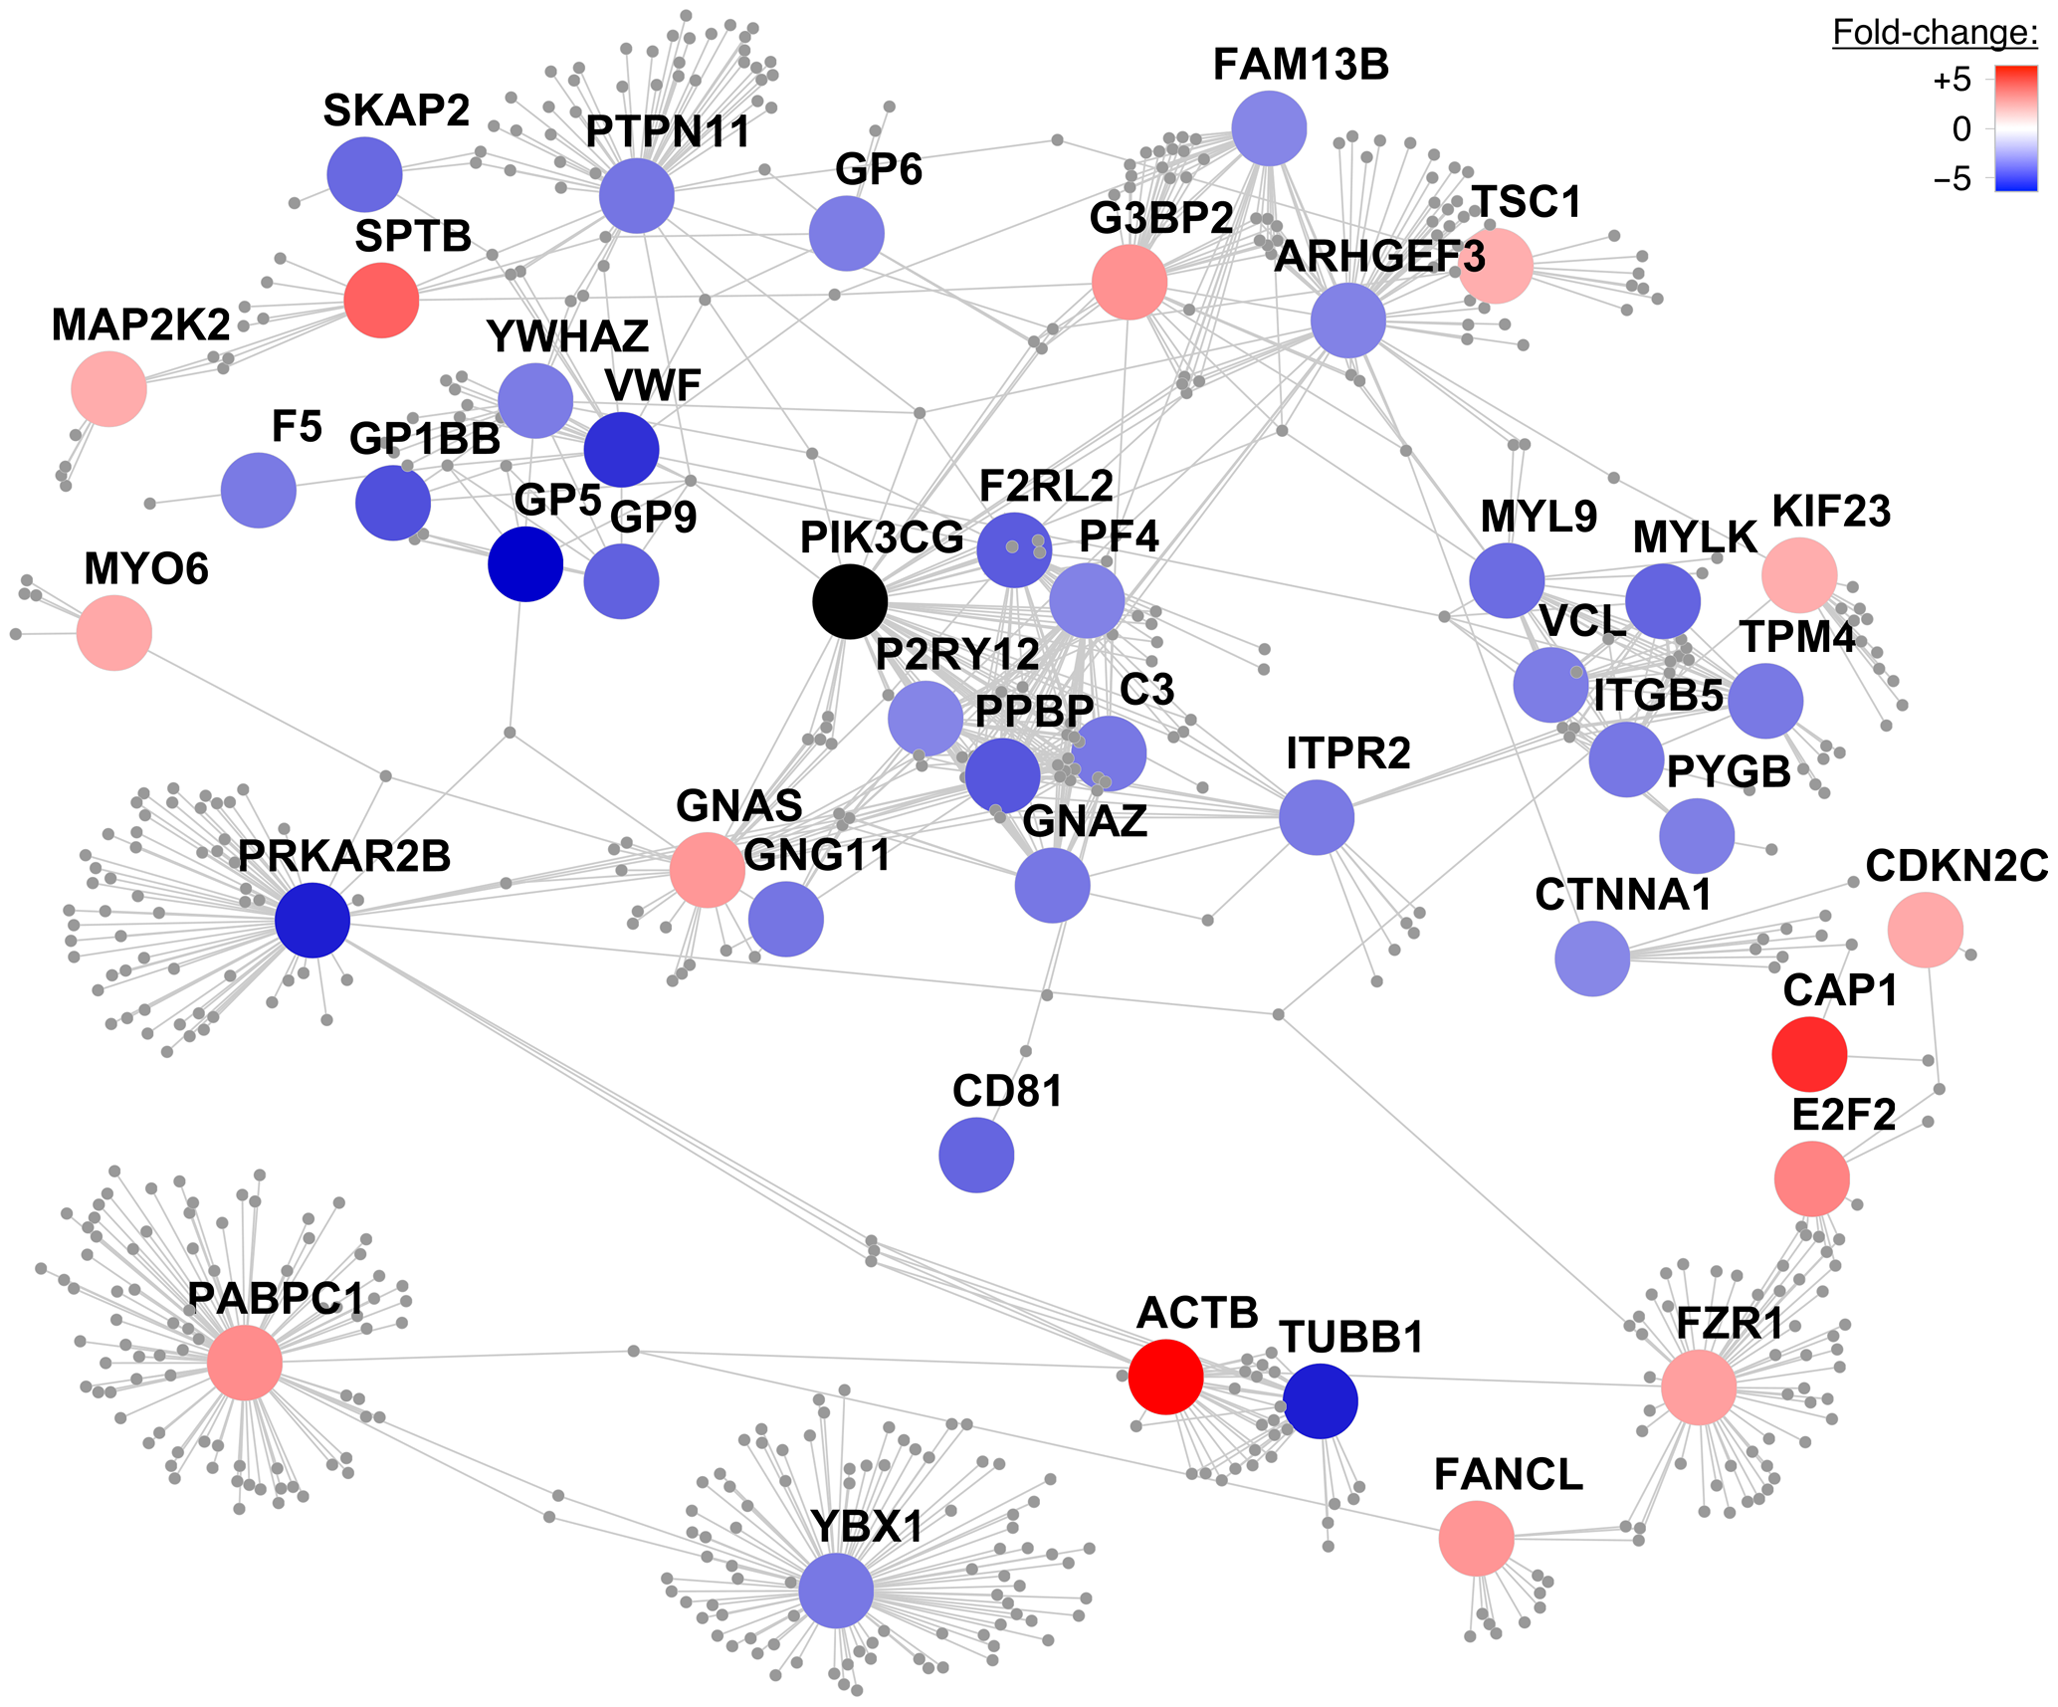 Protein–protein interaction network centered on PIK3CG.